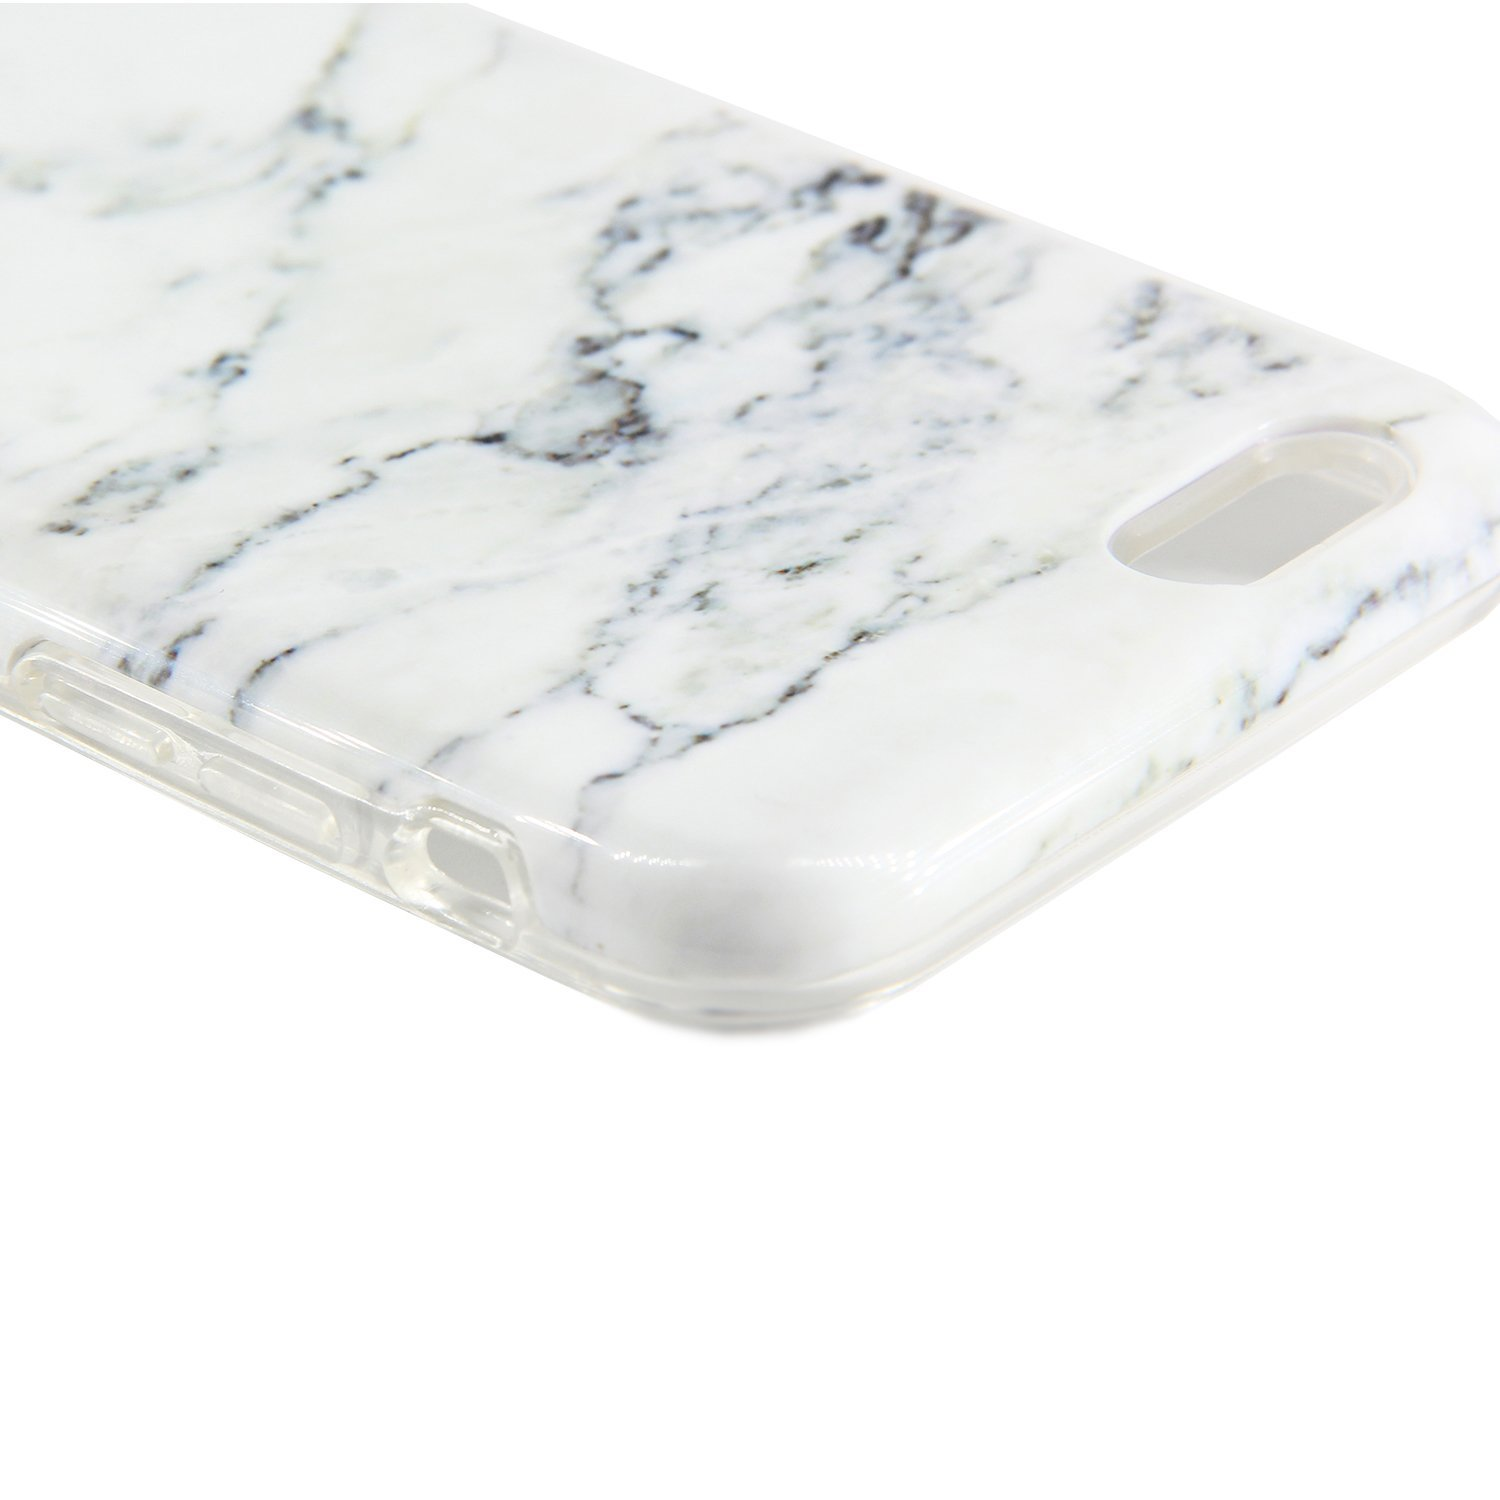 Marble iPhone Protective Tempered Protector Image 3